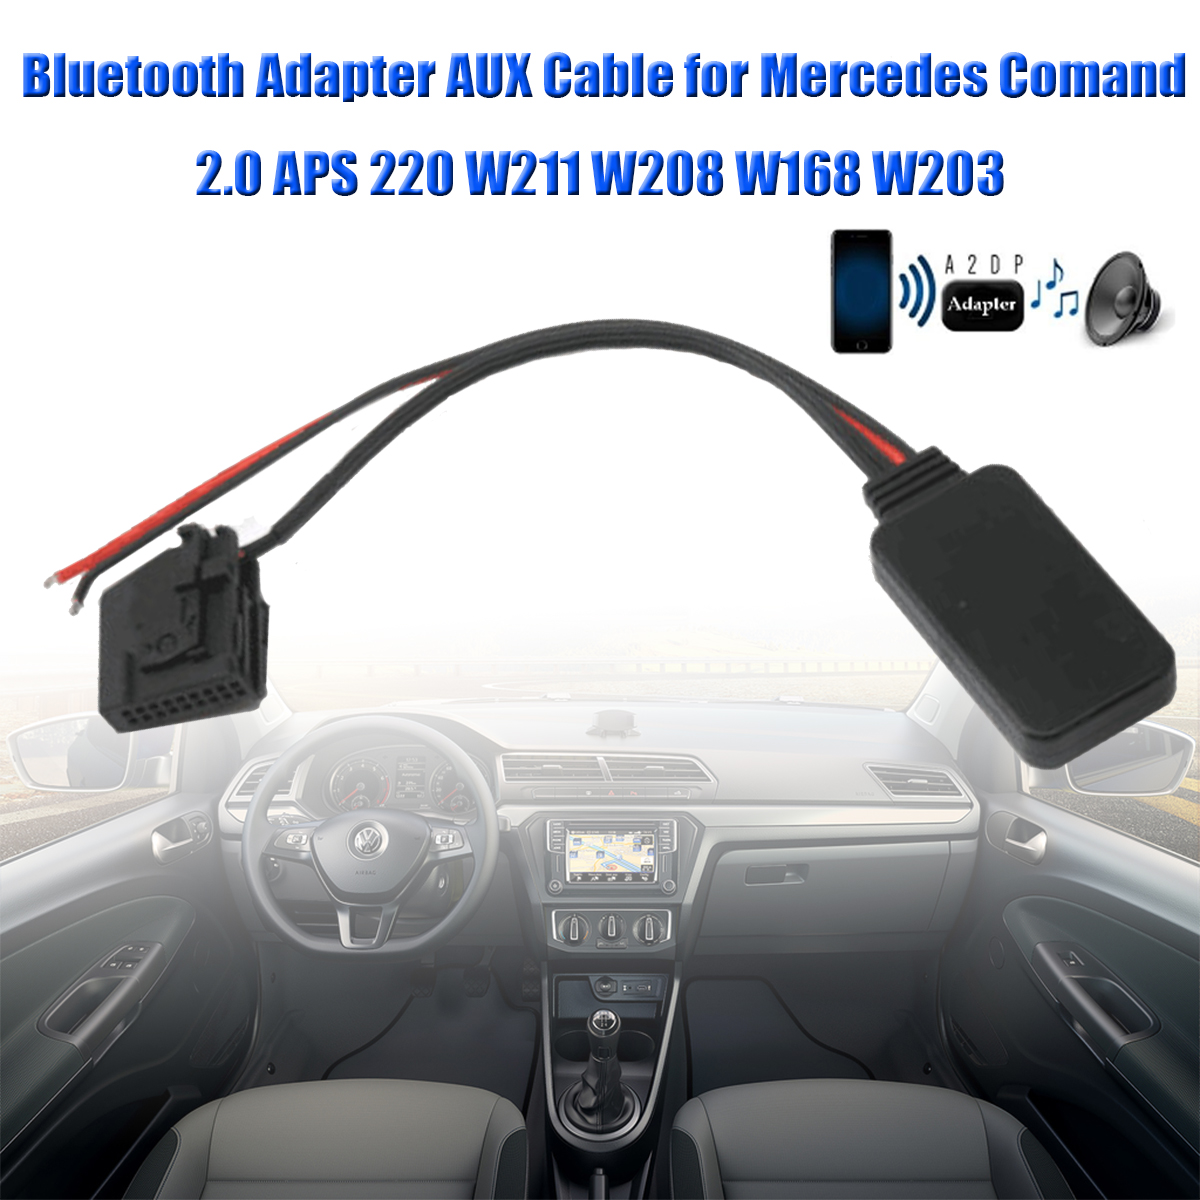 Detail Feedback Questions About Auto Bluetooth Adapter Aux Cable For Mercedes W203 Phone Wiring 1 X Comand 20 Aps 220 W211 W208 W168